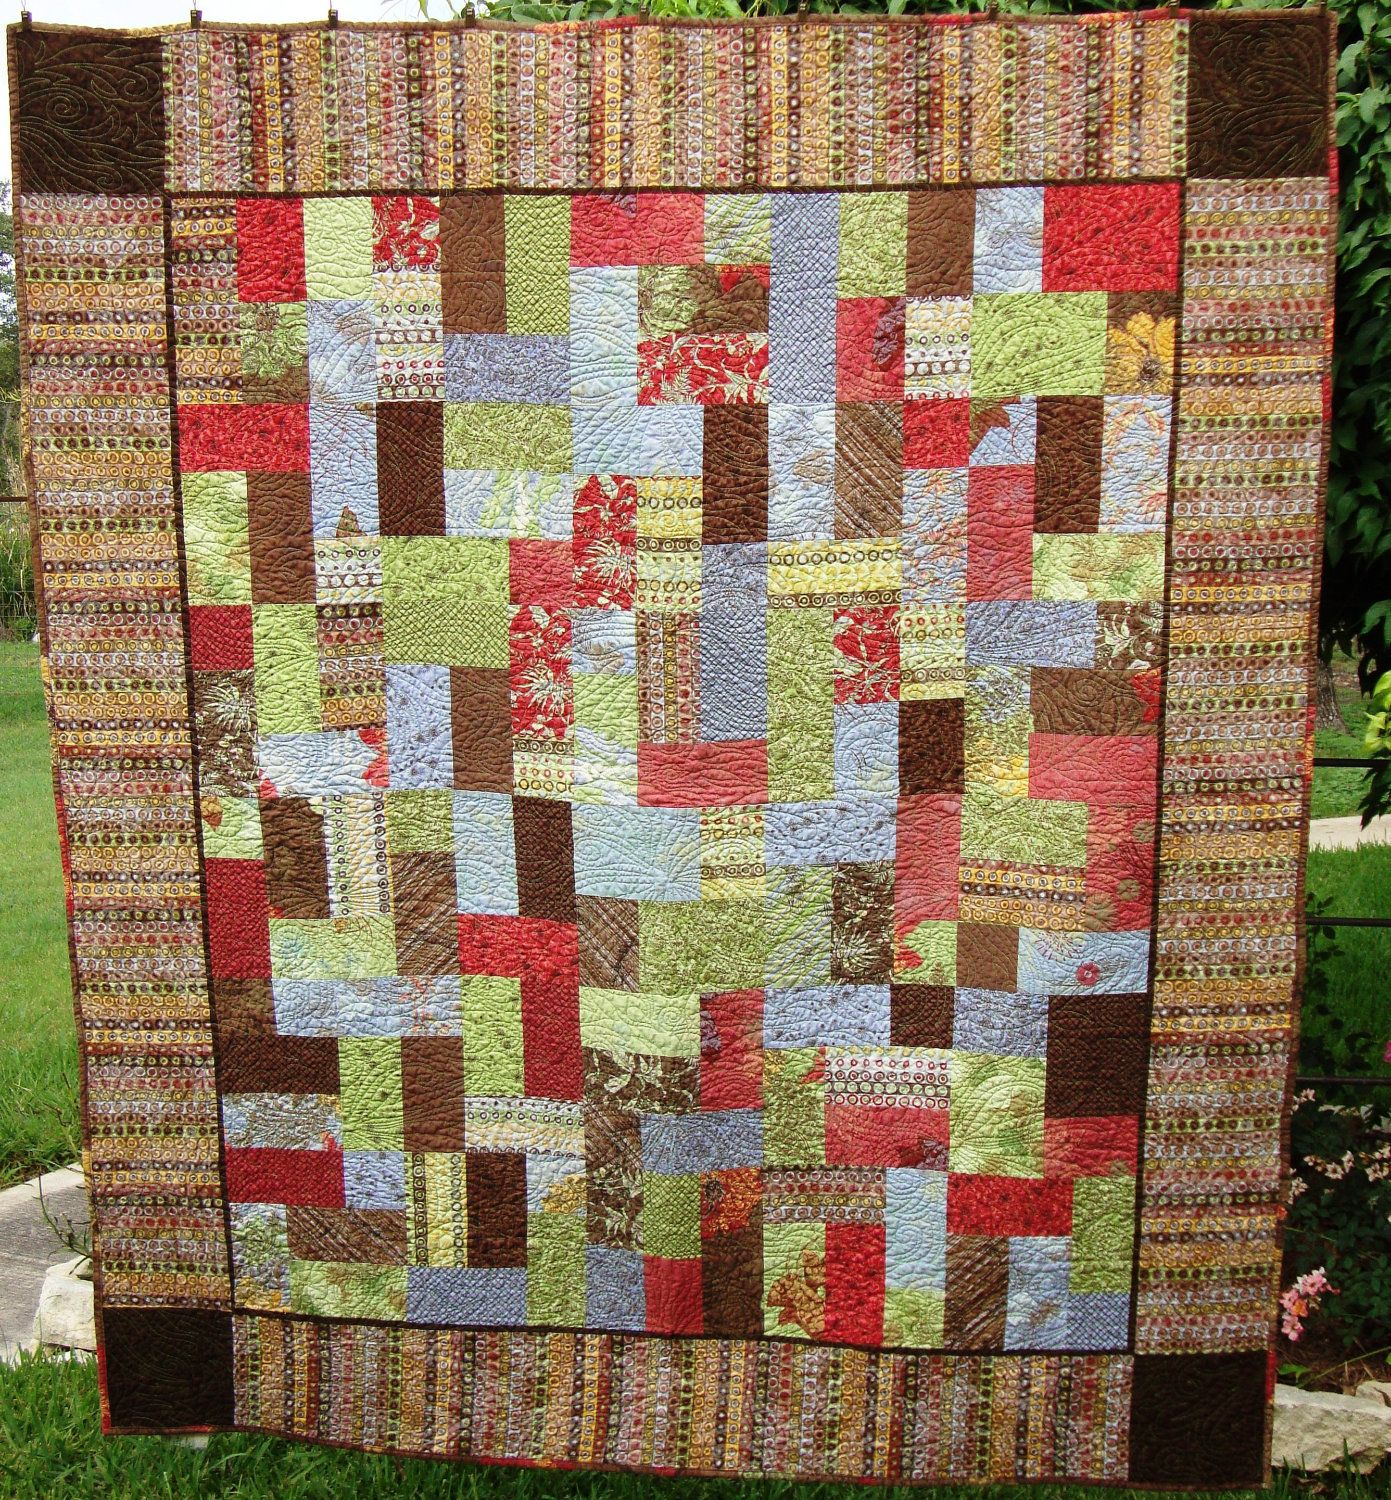 Beautiful Lap Quilt With Reds Greens Blues And Browns 100 00 Via Etsy Lap Quilt Quilts Long Arm Quilting Machine